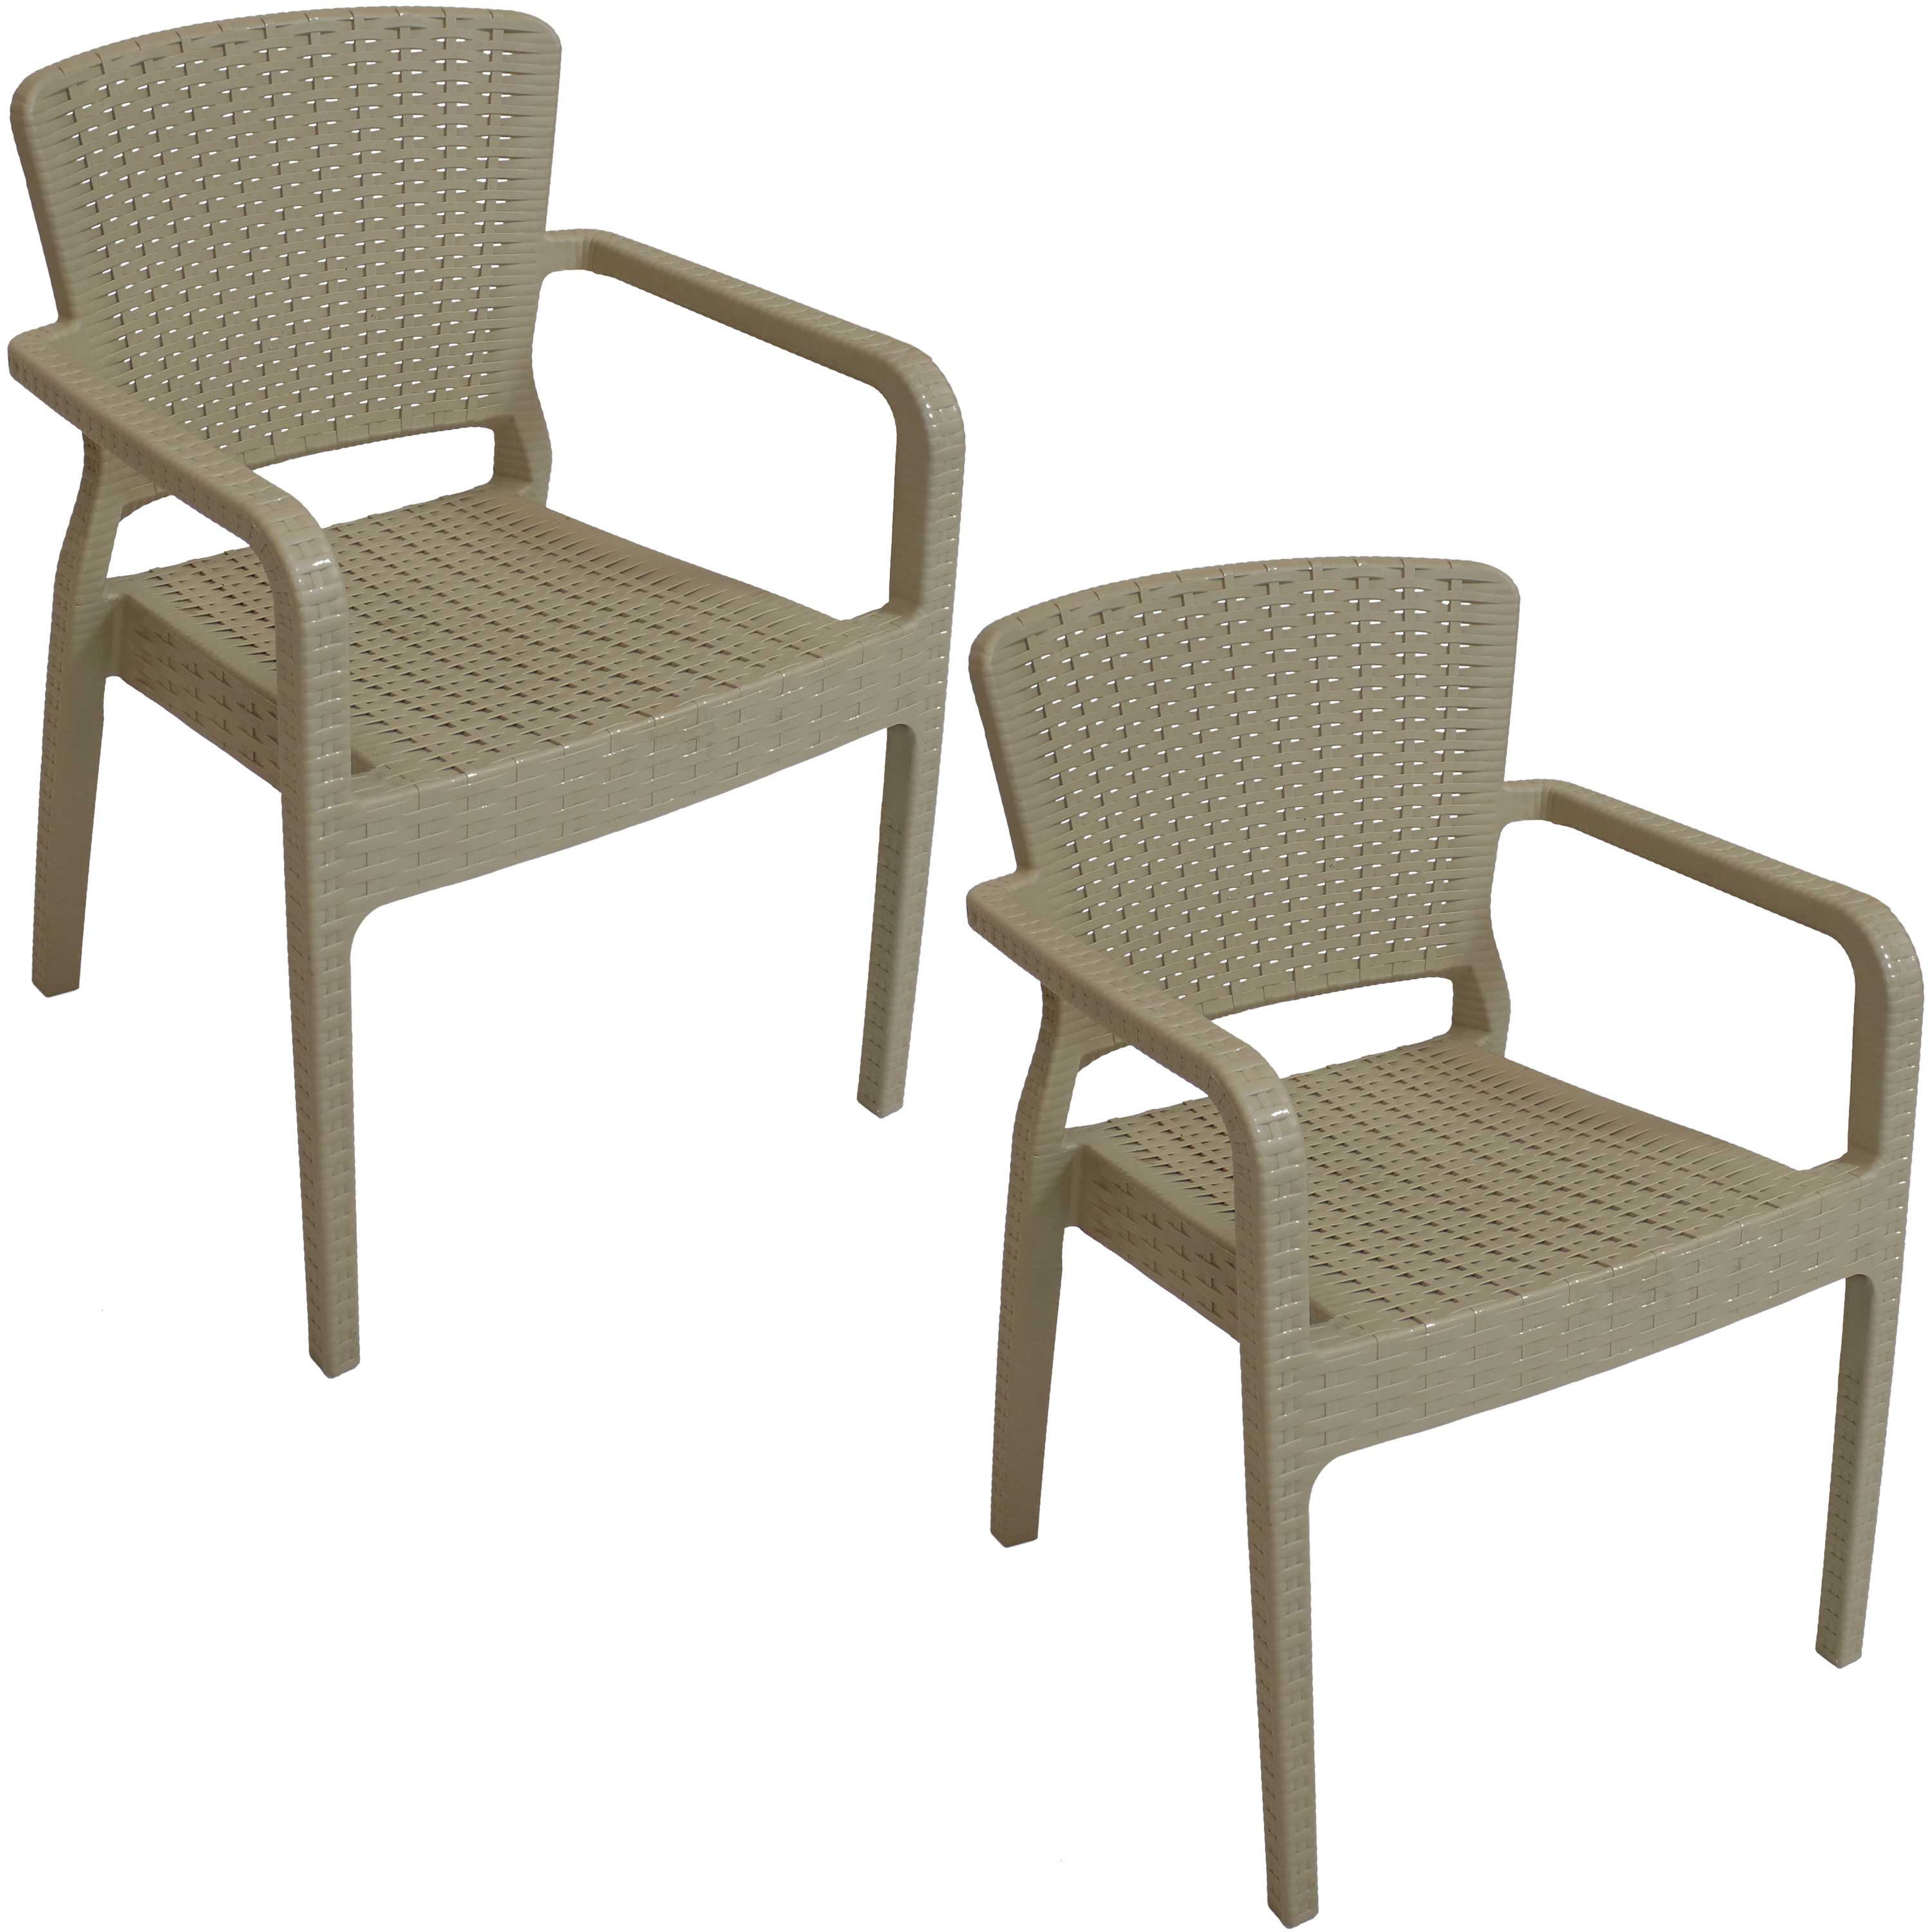 Details about Sunnydaze Segonia Plastic Stacking Armchair Set of 2 Indoor Outdoor Coffee